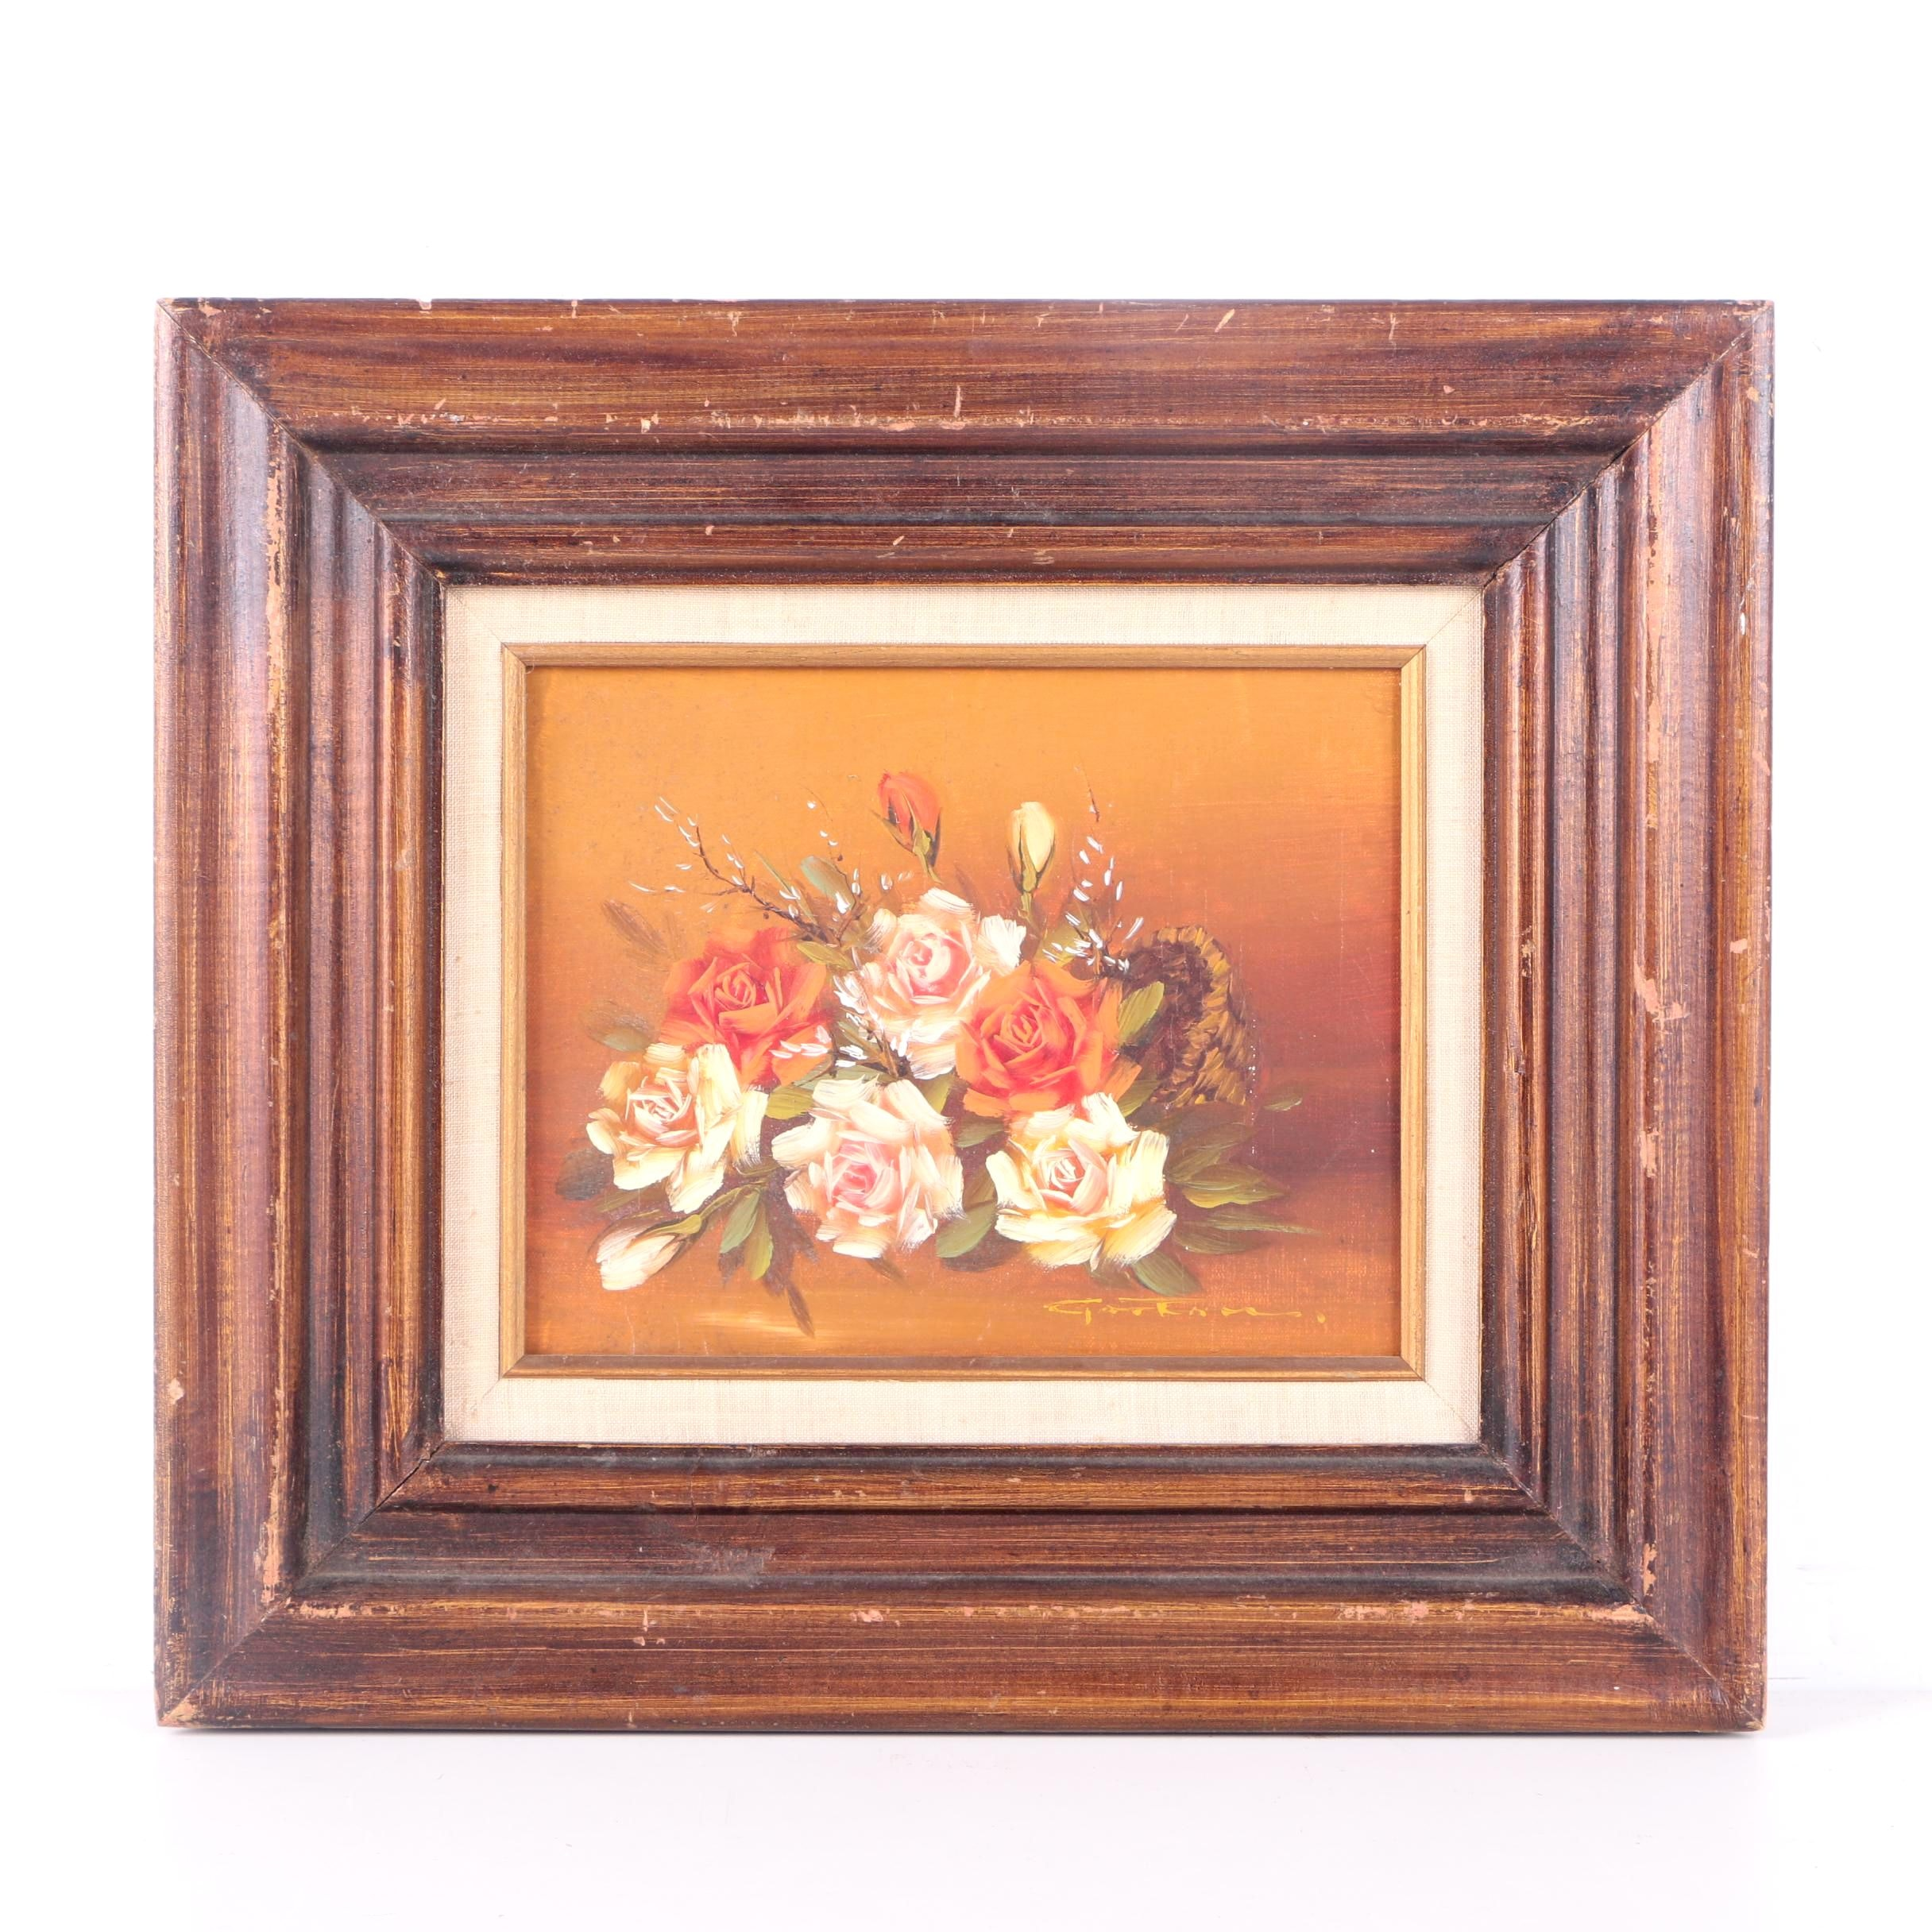 Oil Painting on Canvas of a Rose Still Life